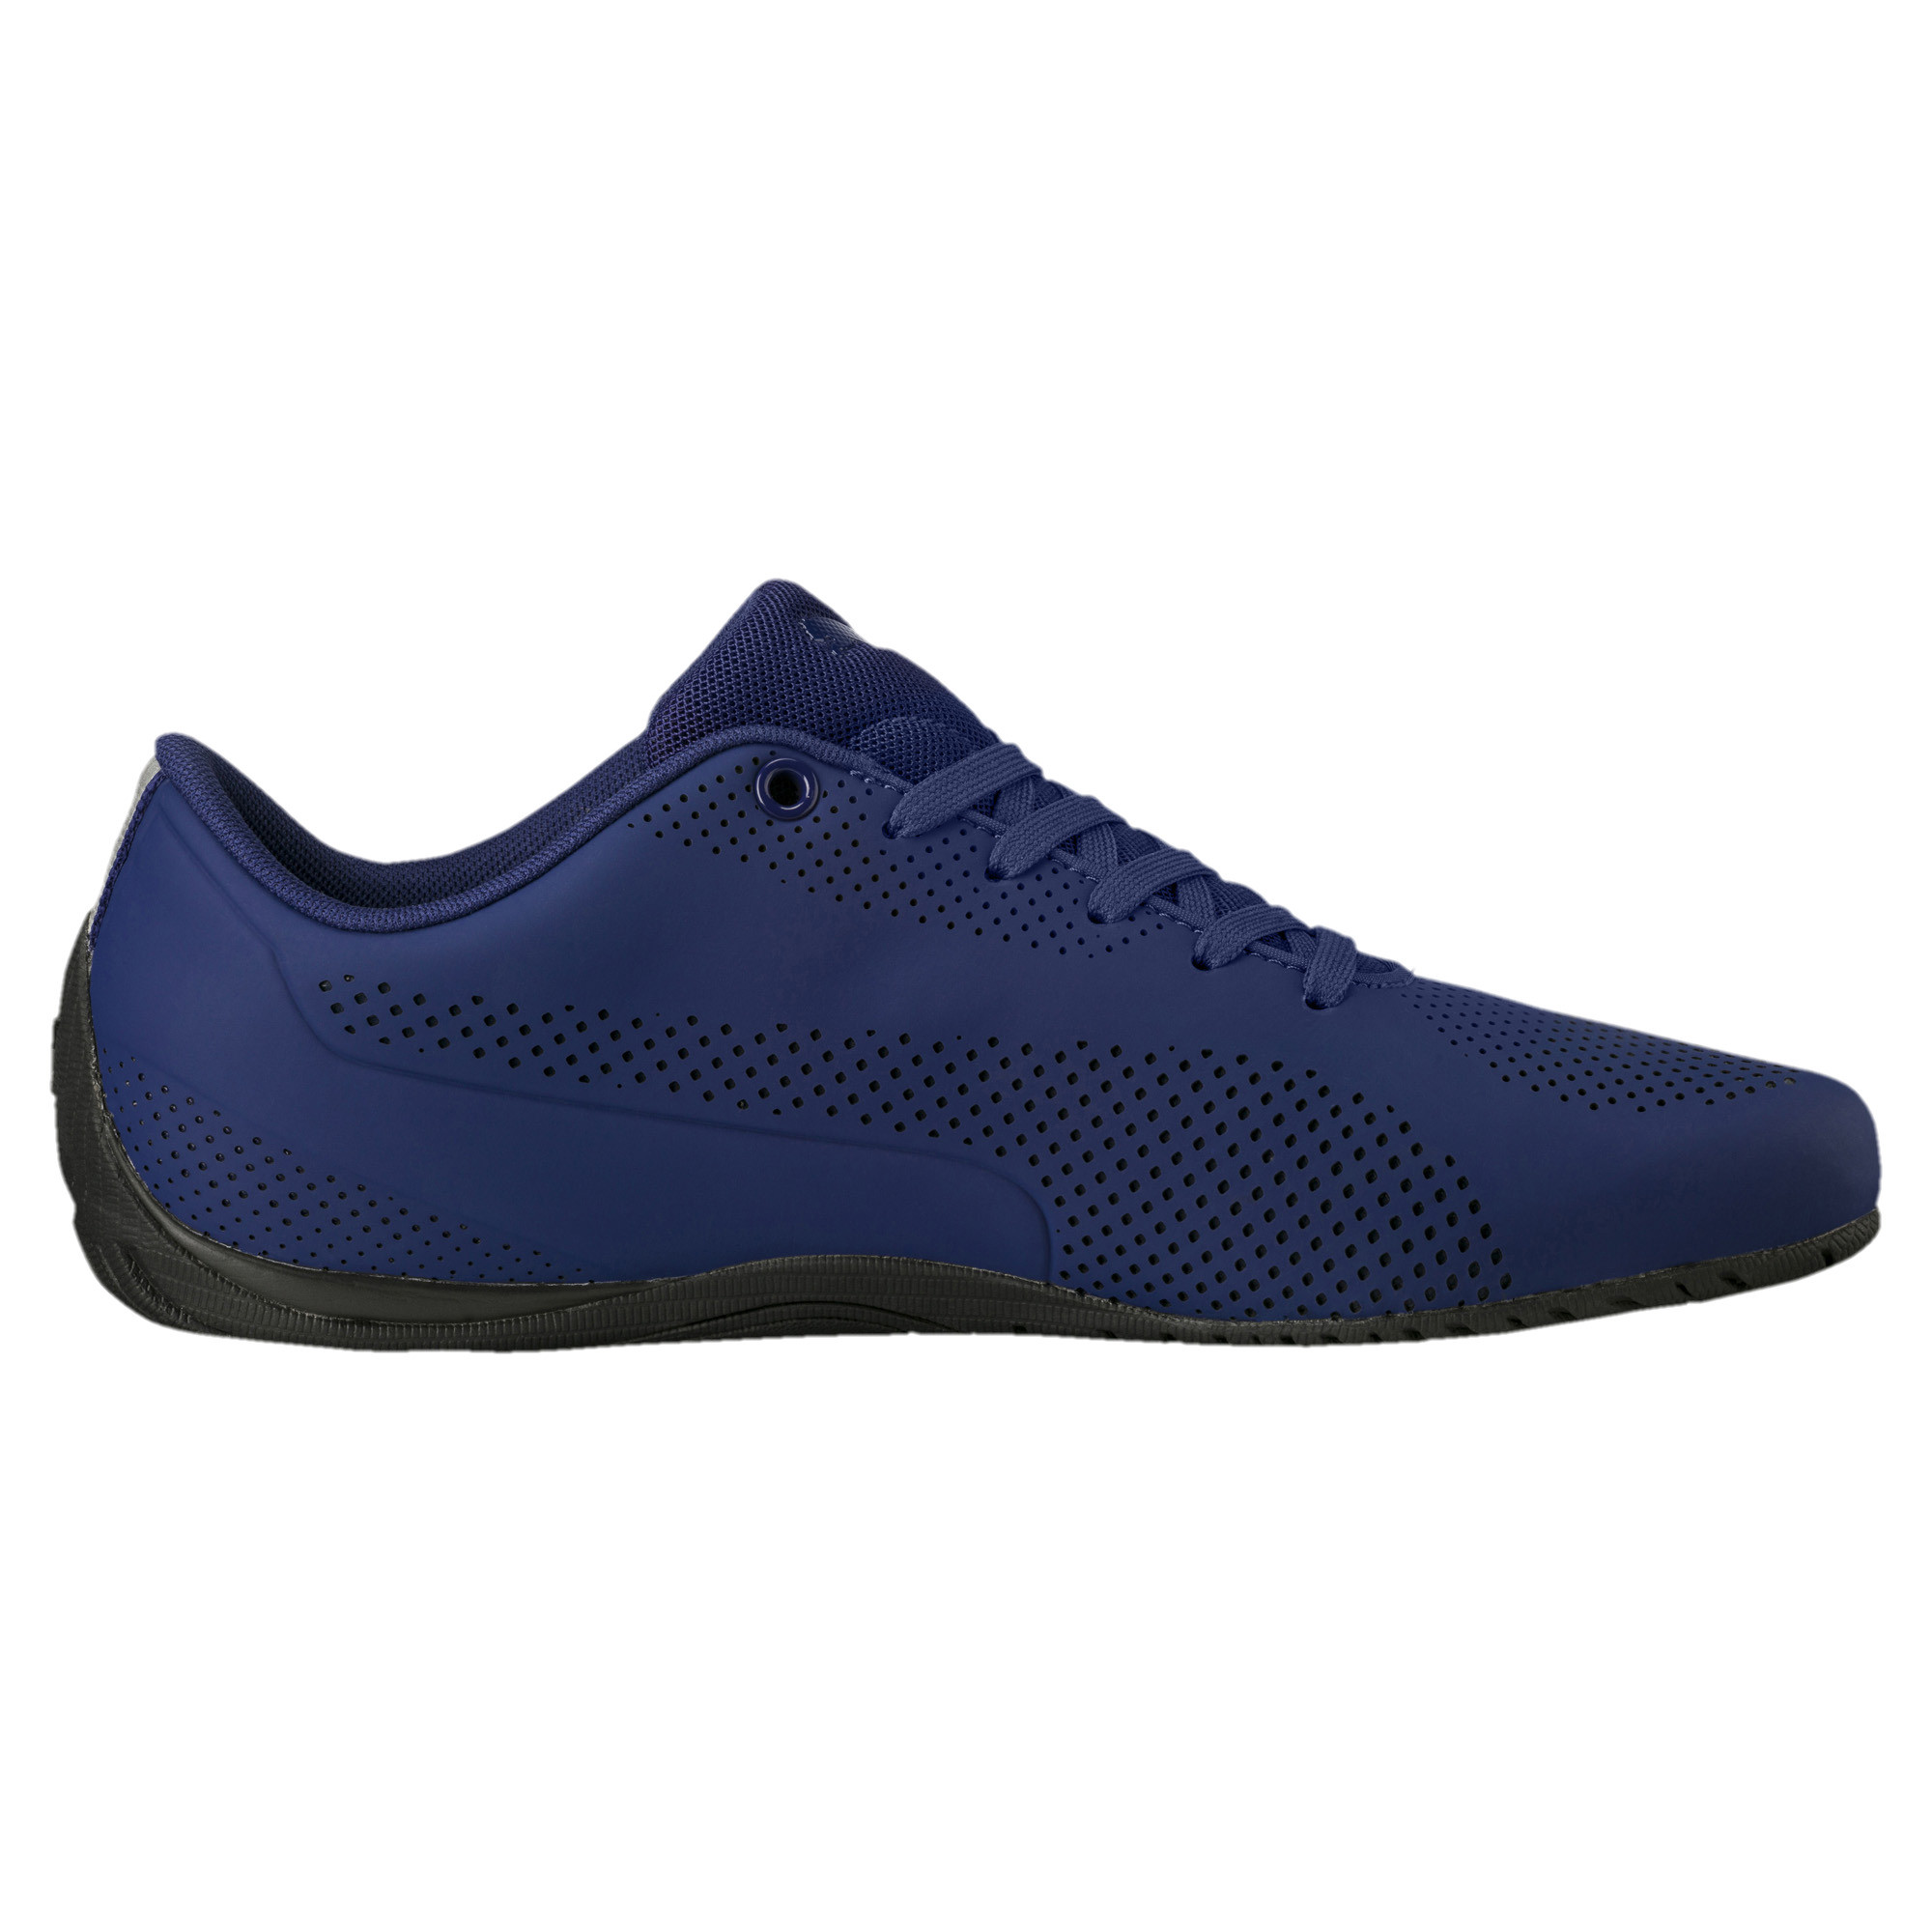 PUMA-Drift-Cat-Ultra-Reflective-Men-039-s-Shoes-Men-Shoe-Sport-Classics miniatura 10